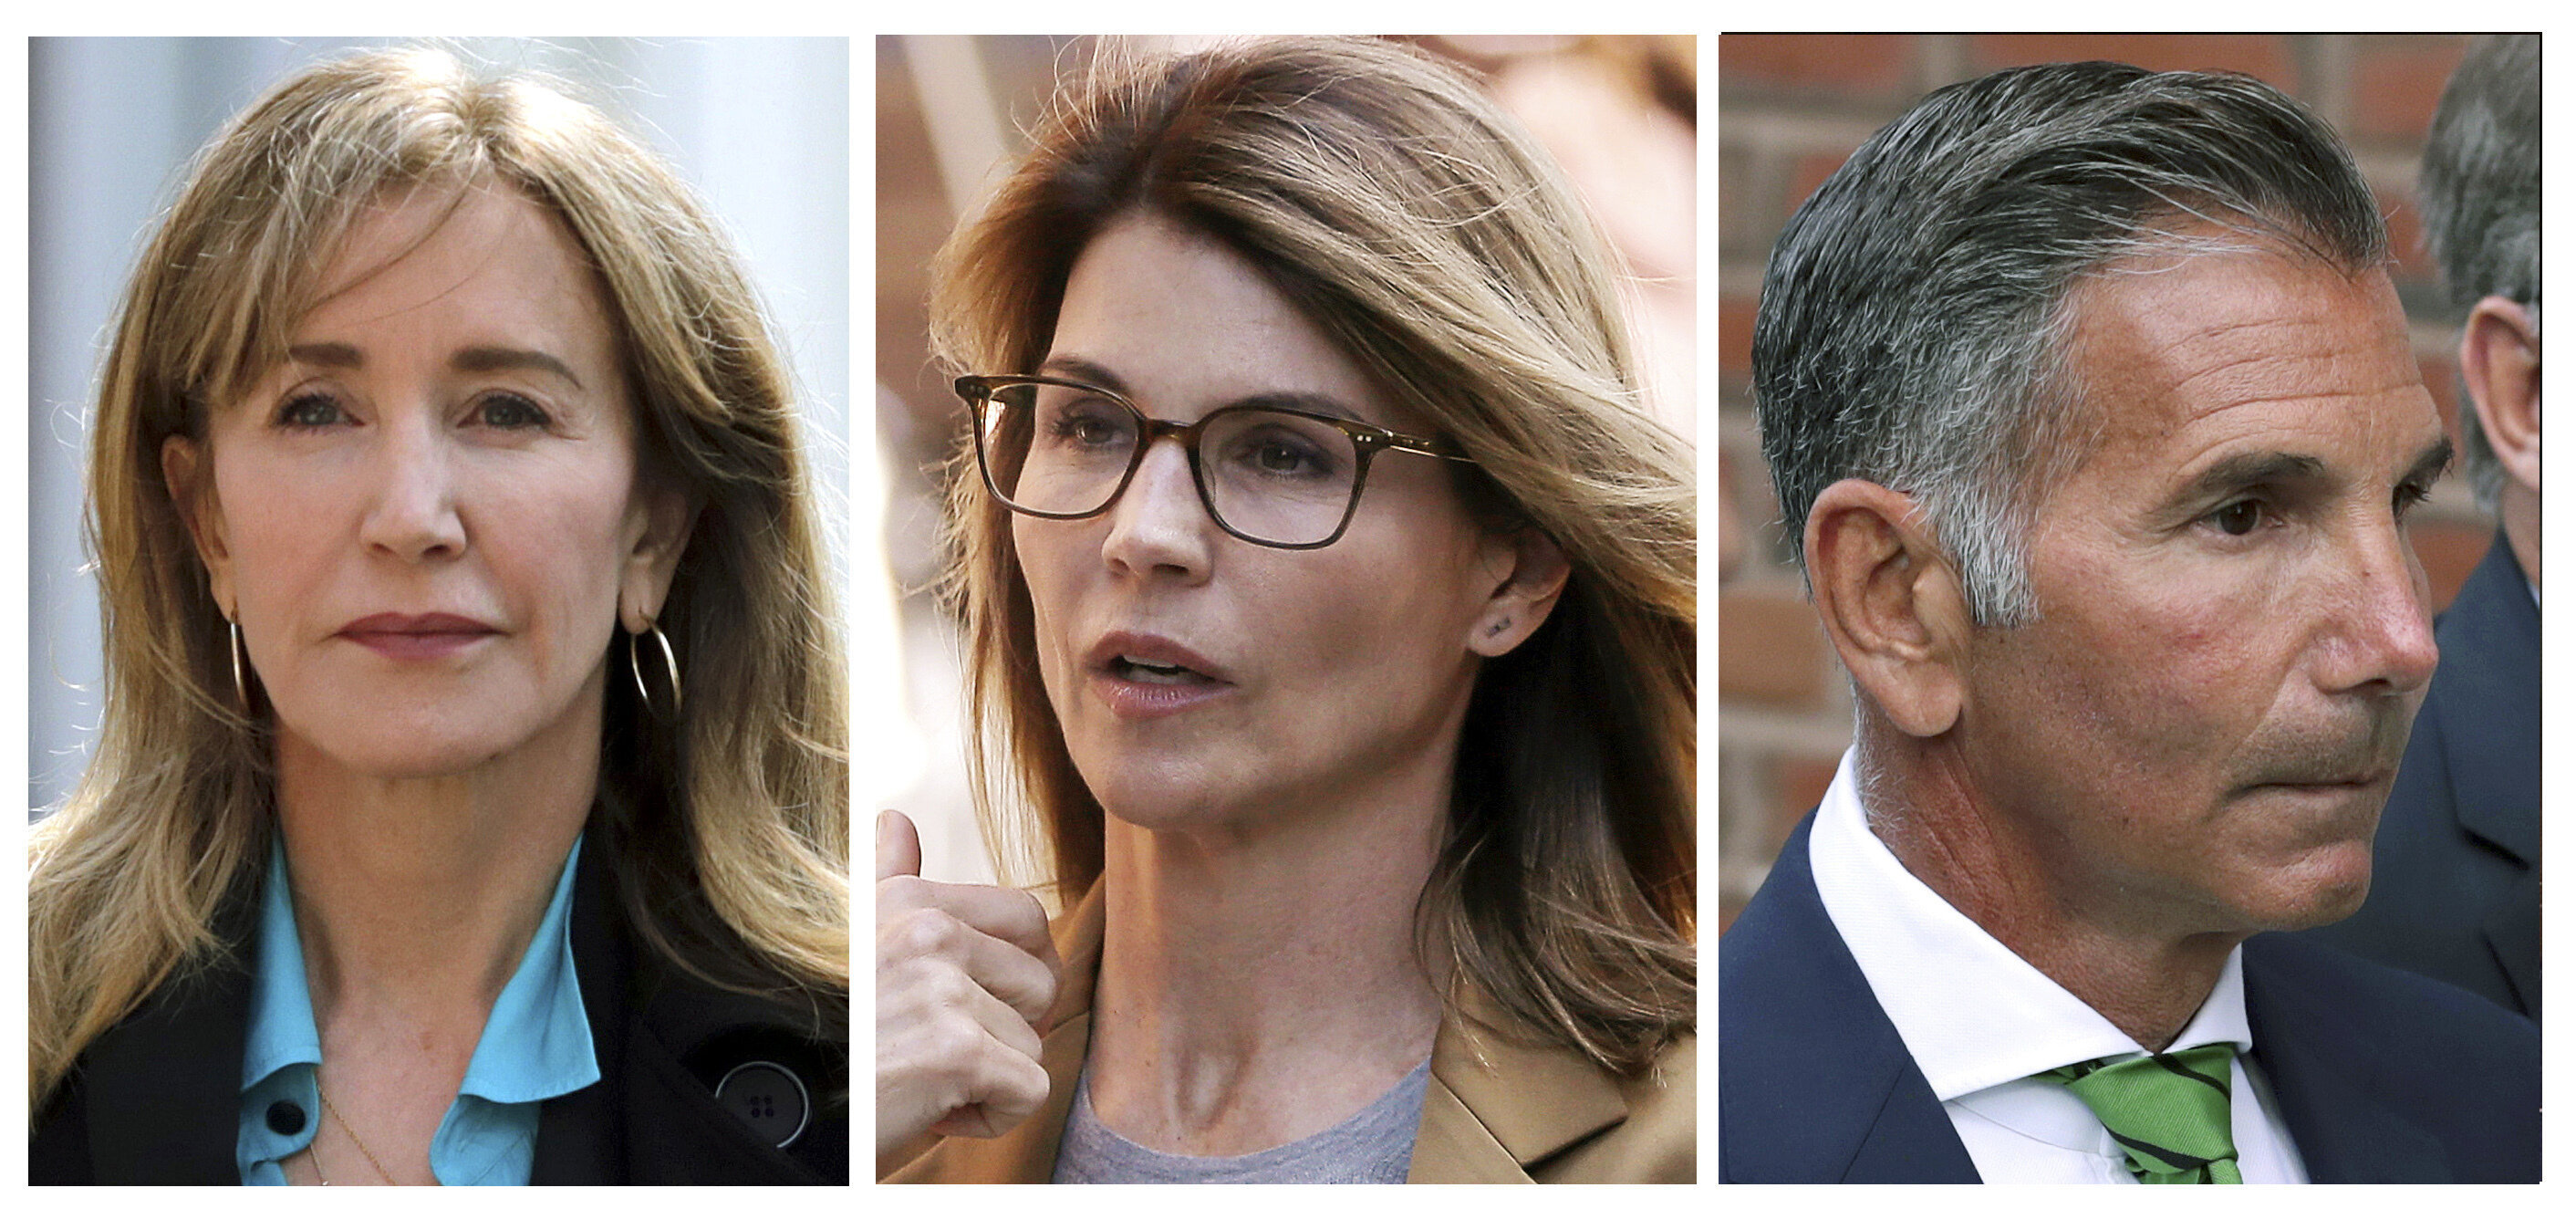 Felicity Huffman, Lori Loughlin and Mossimo Giannulli (left to right) are among dozens of people accused of involvement in a